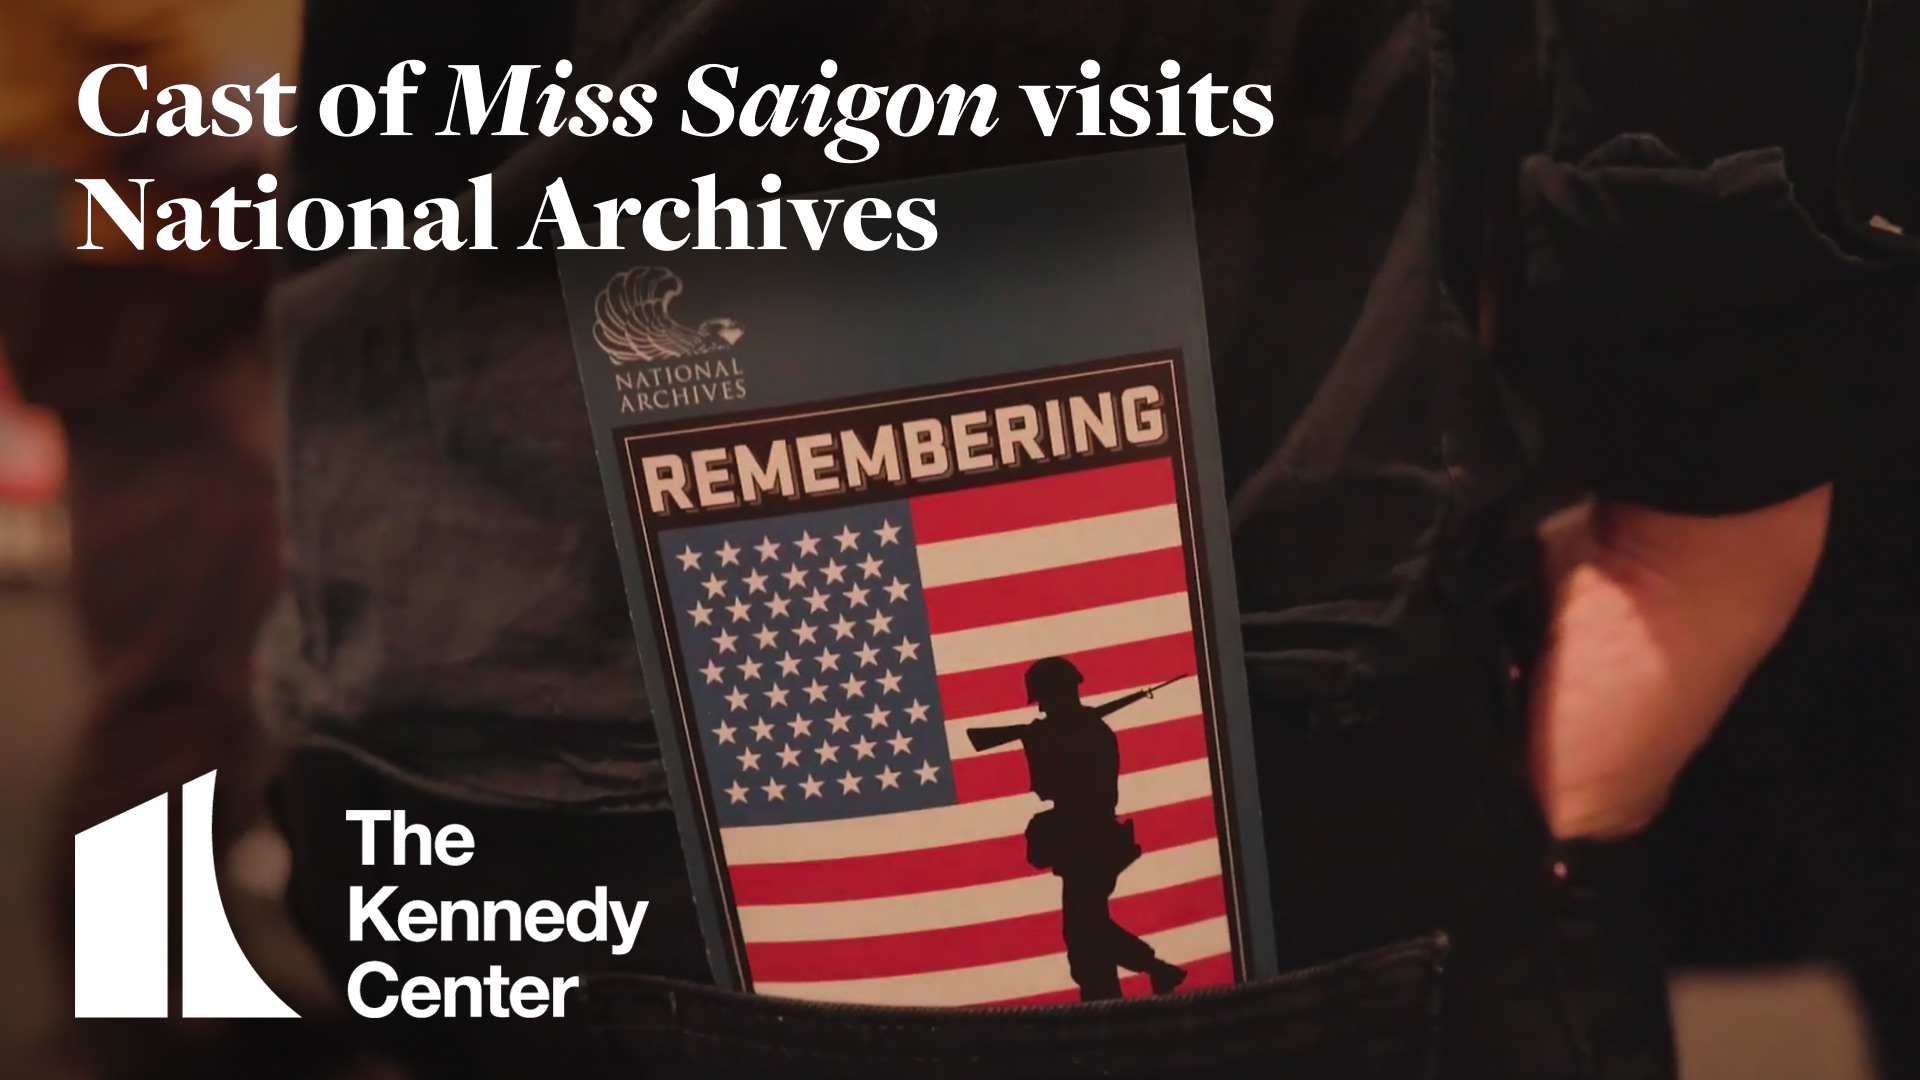 Cast of Miss Saigon Visits National Archives